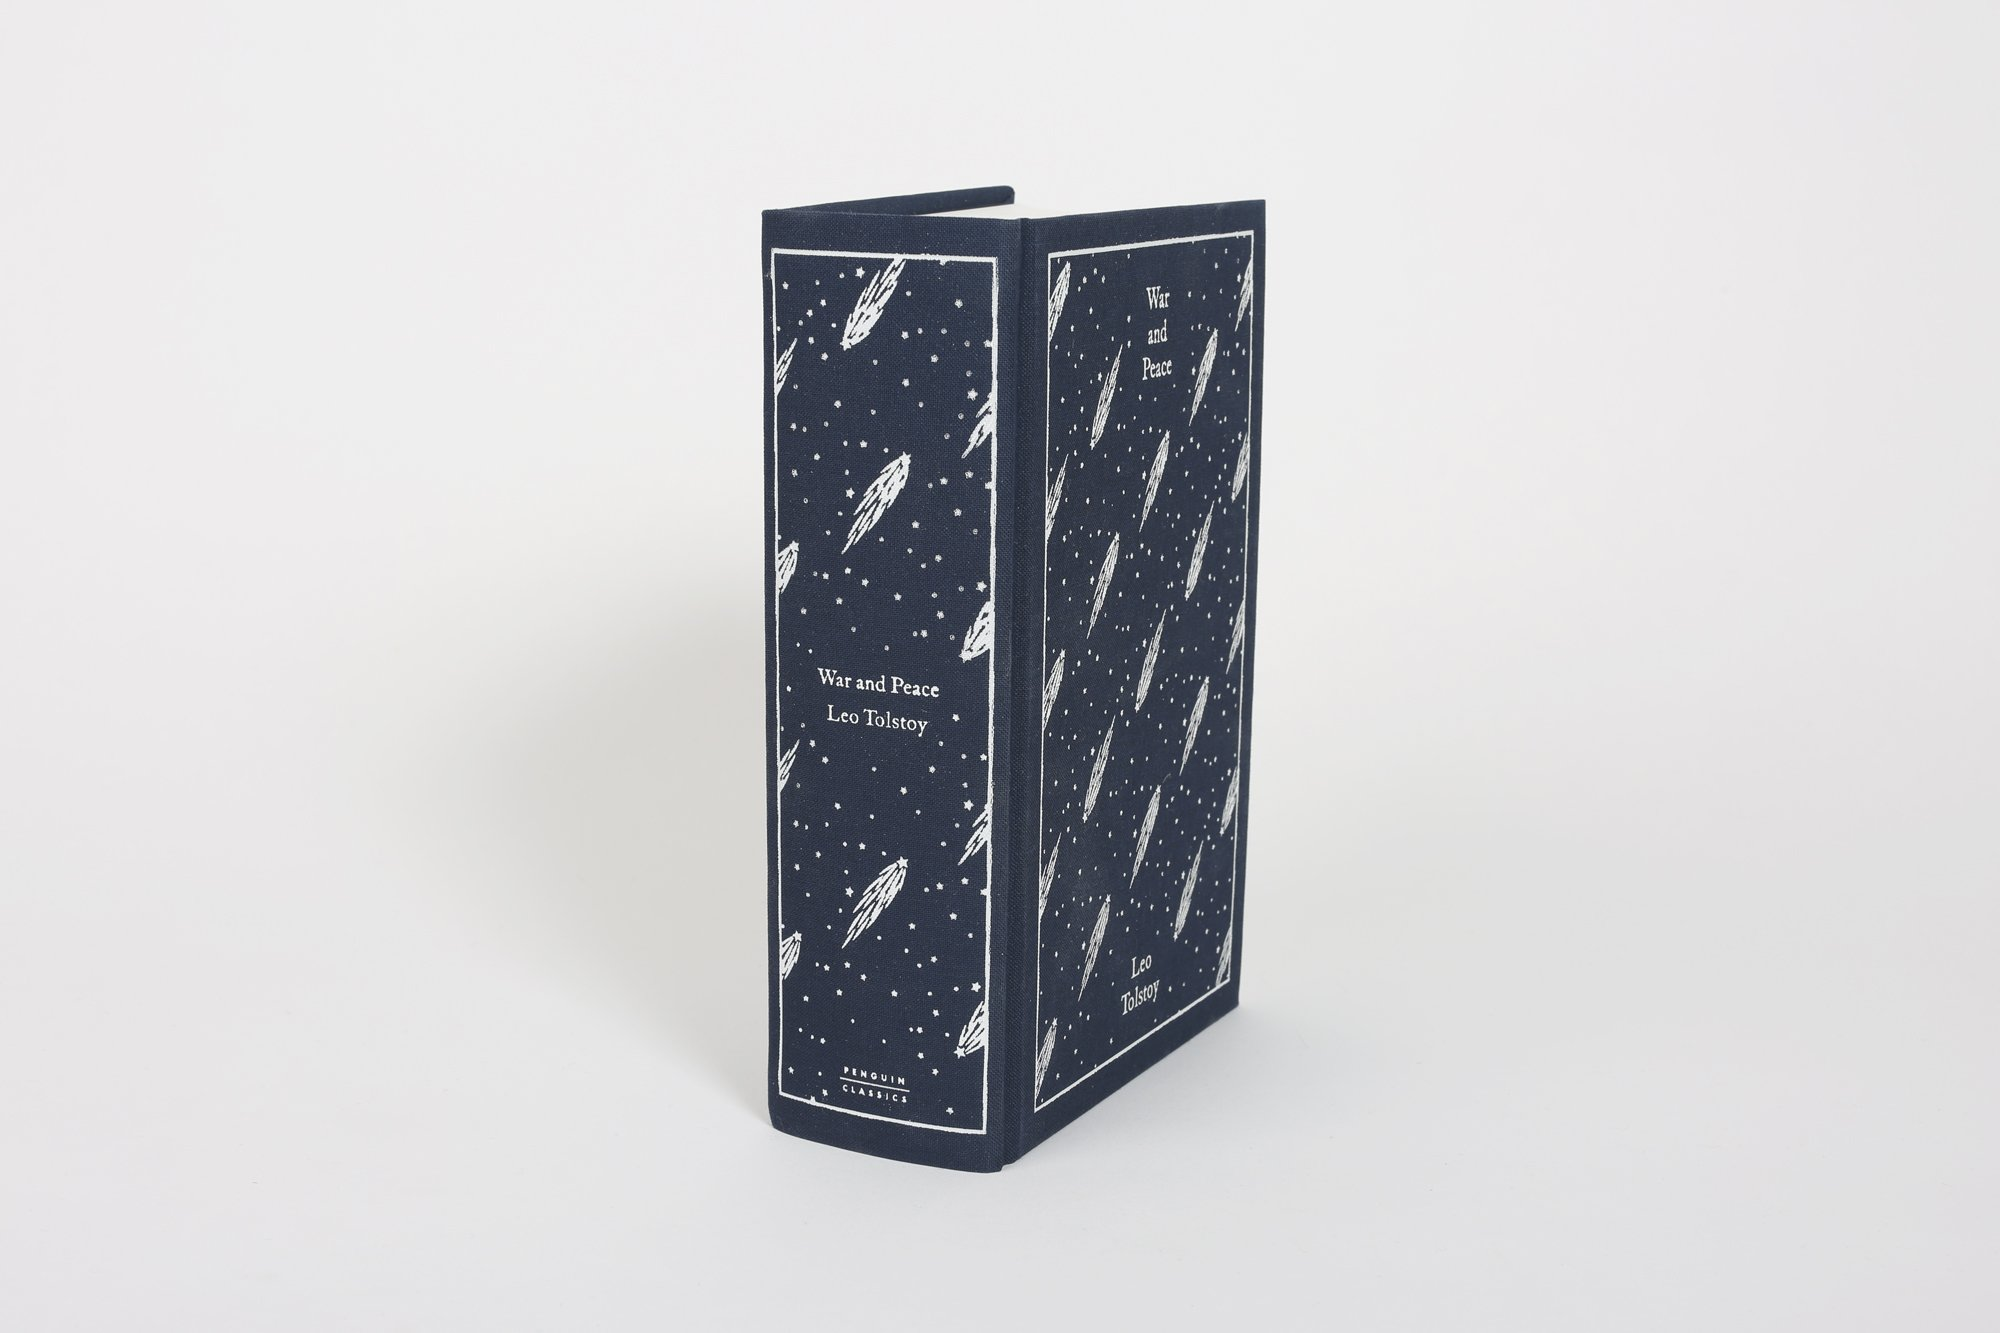 war and peace penguin clothbound classics co uk leo war and peace penguin clothbound classics co uk leo tolstoy 9780241265543 books